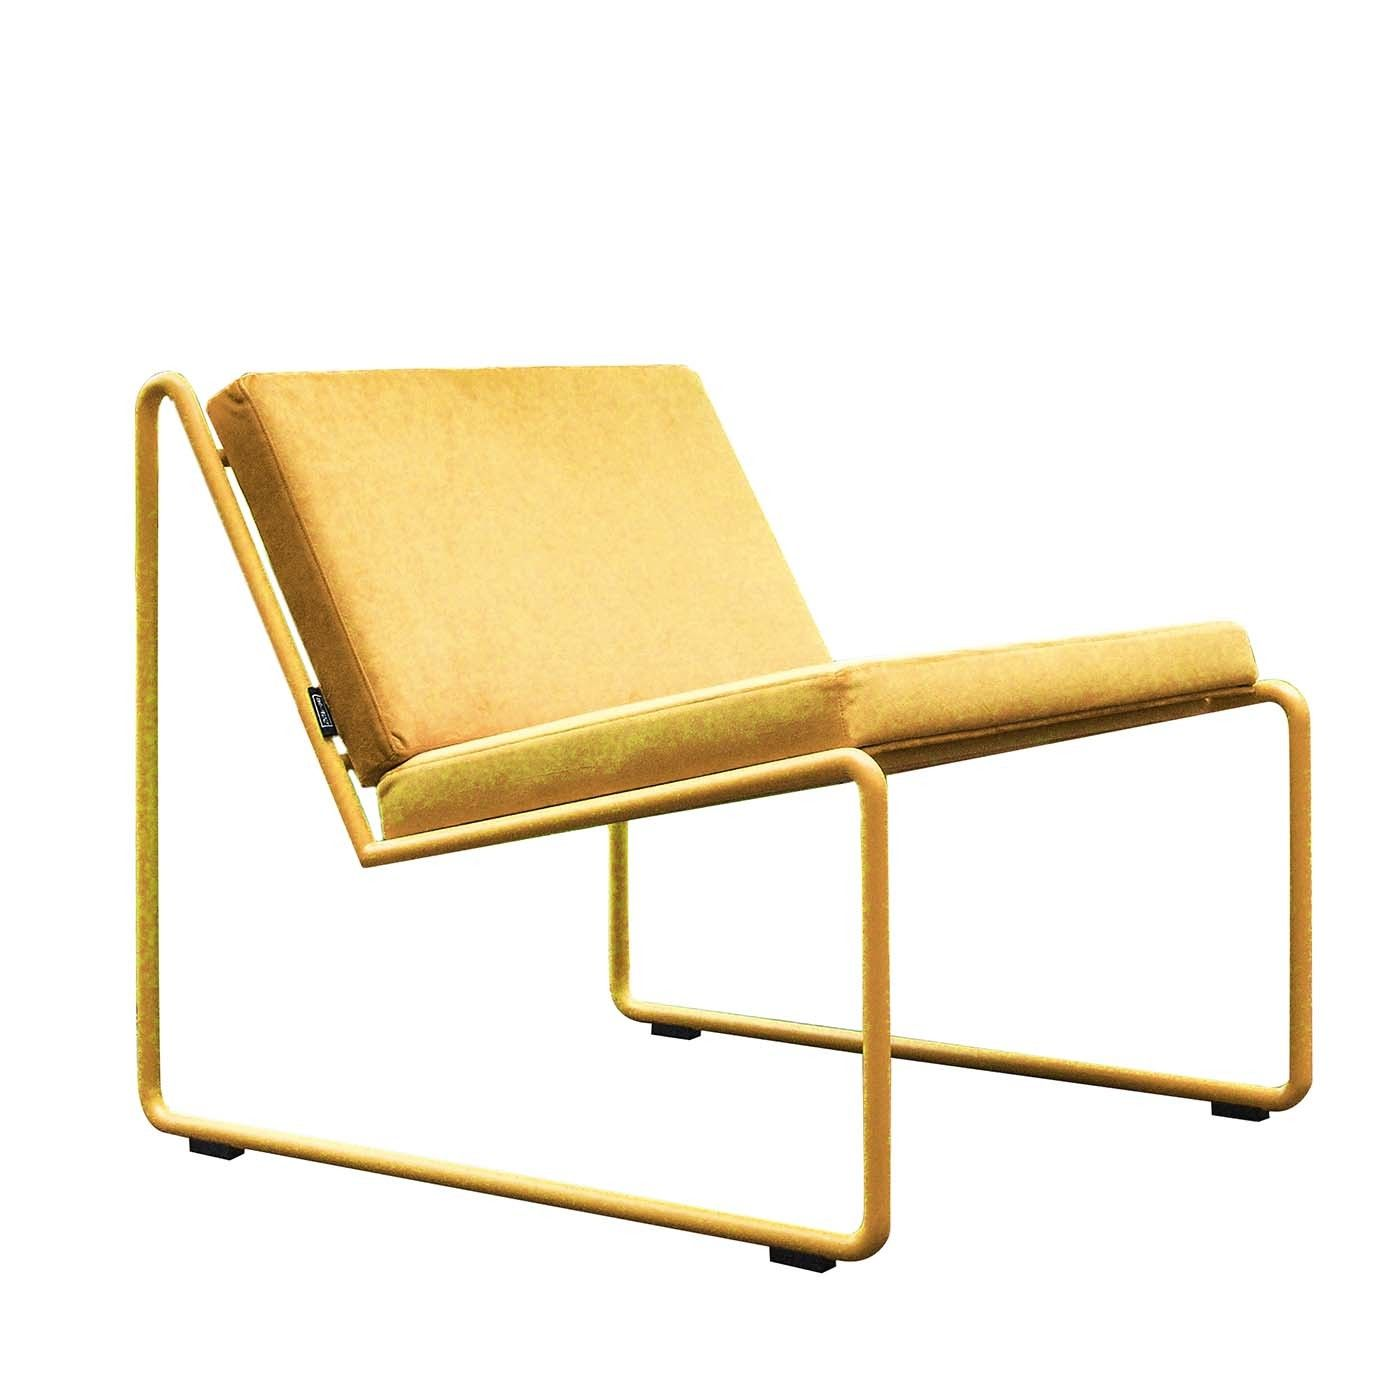 Amazing Bliss Yellow Armchair Chair In 2018 Take A Seat Pdpeps Interior Chair Design Pdpepsorg